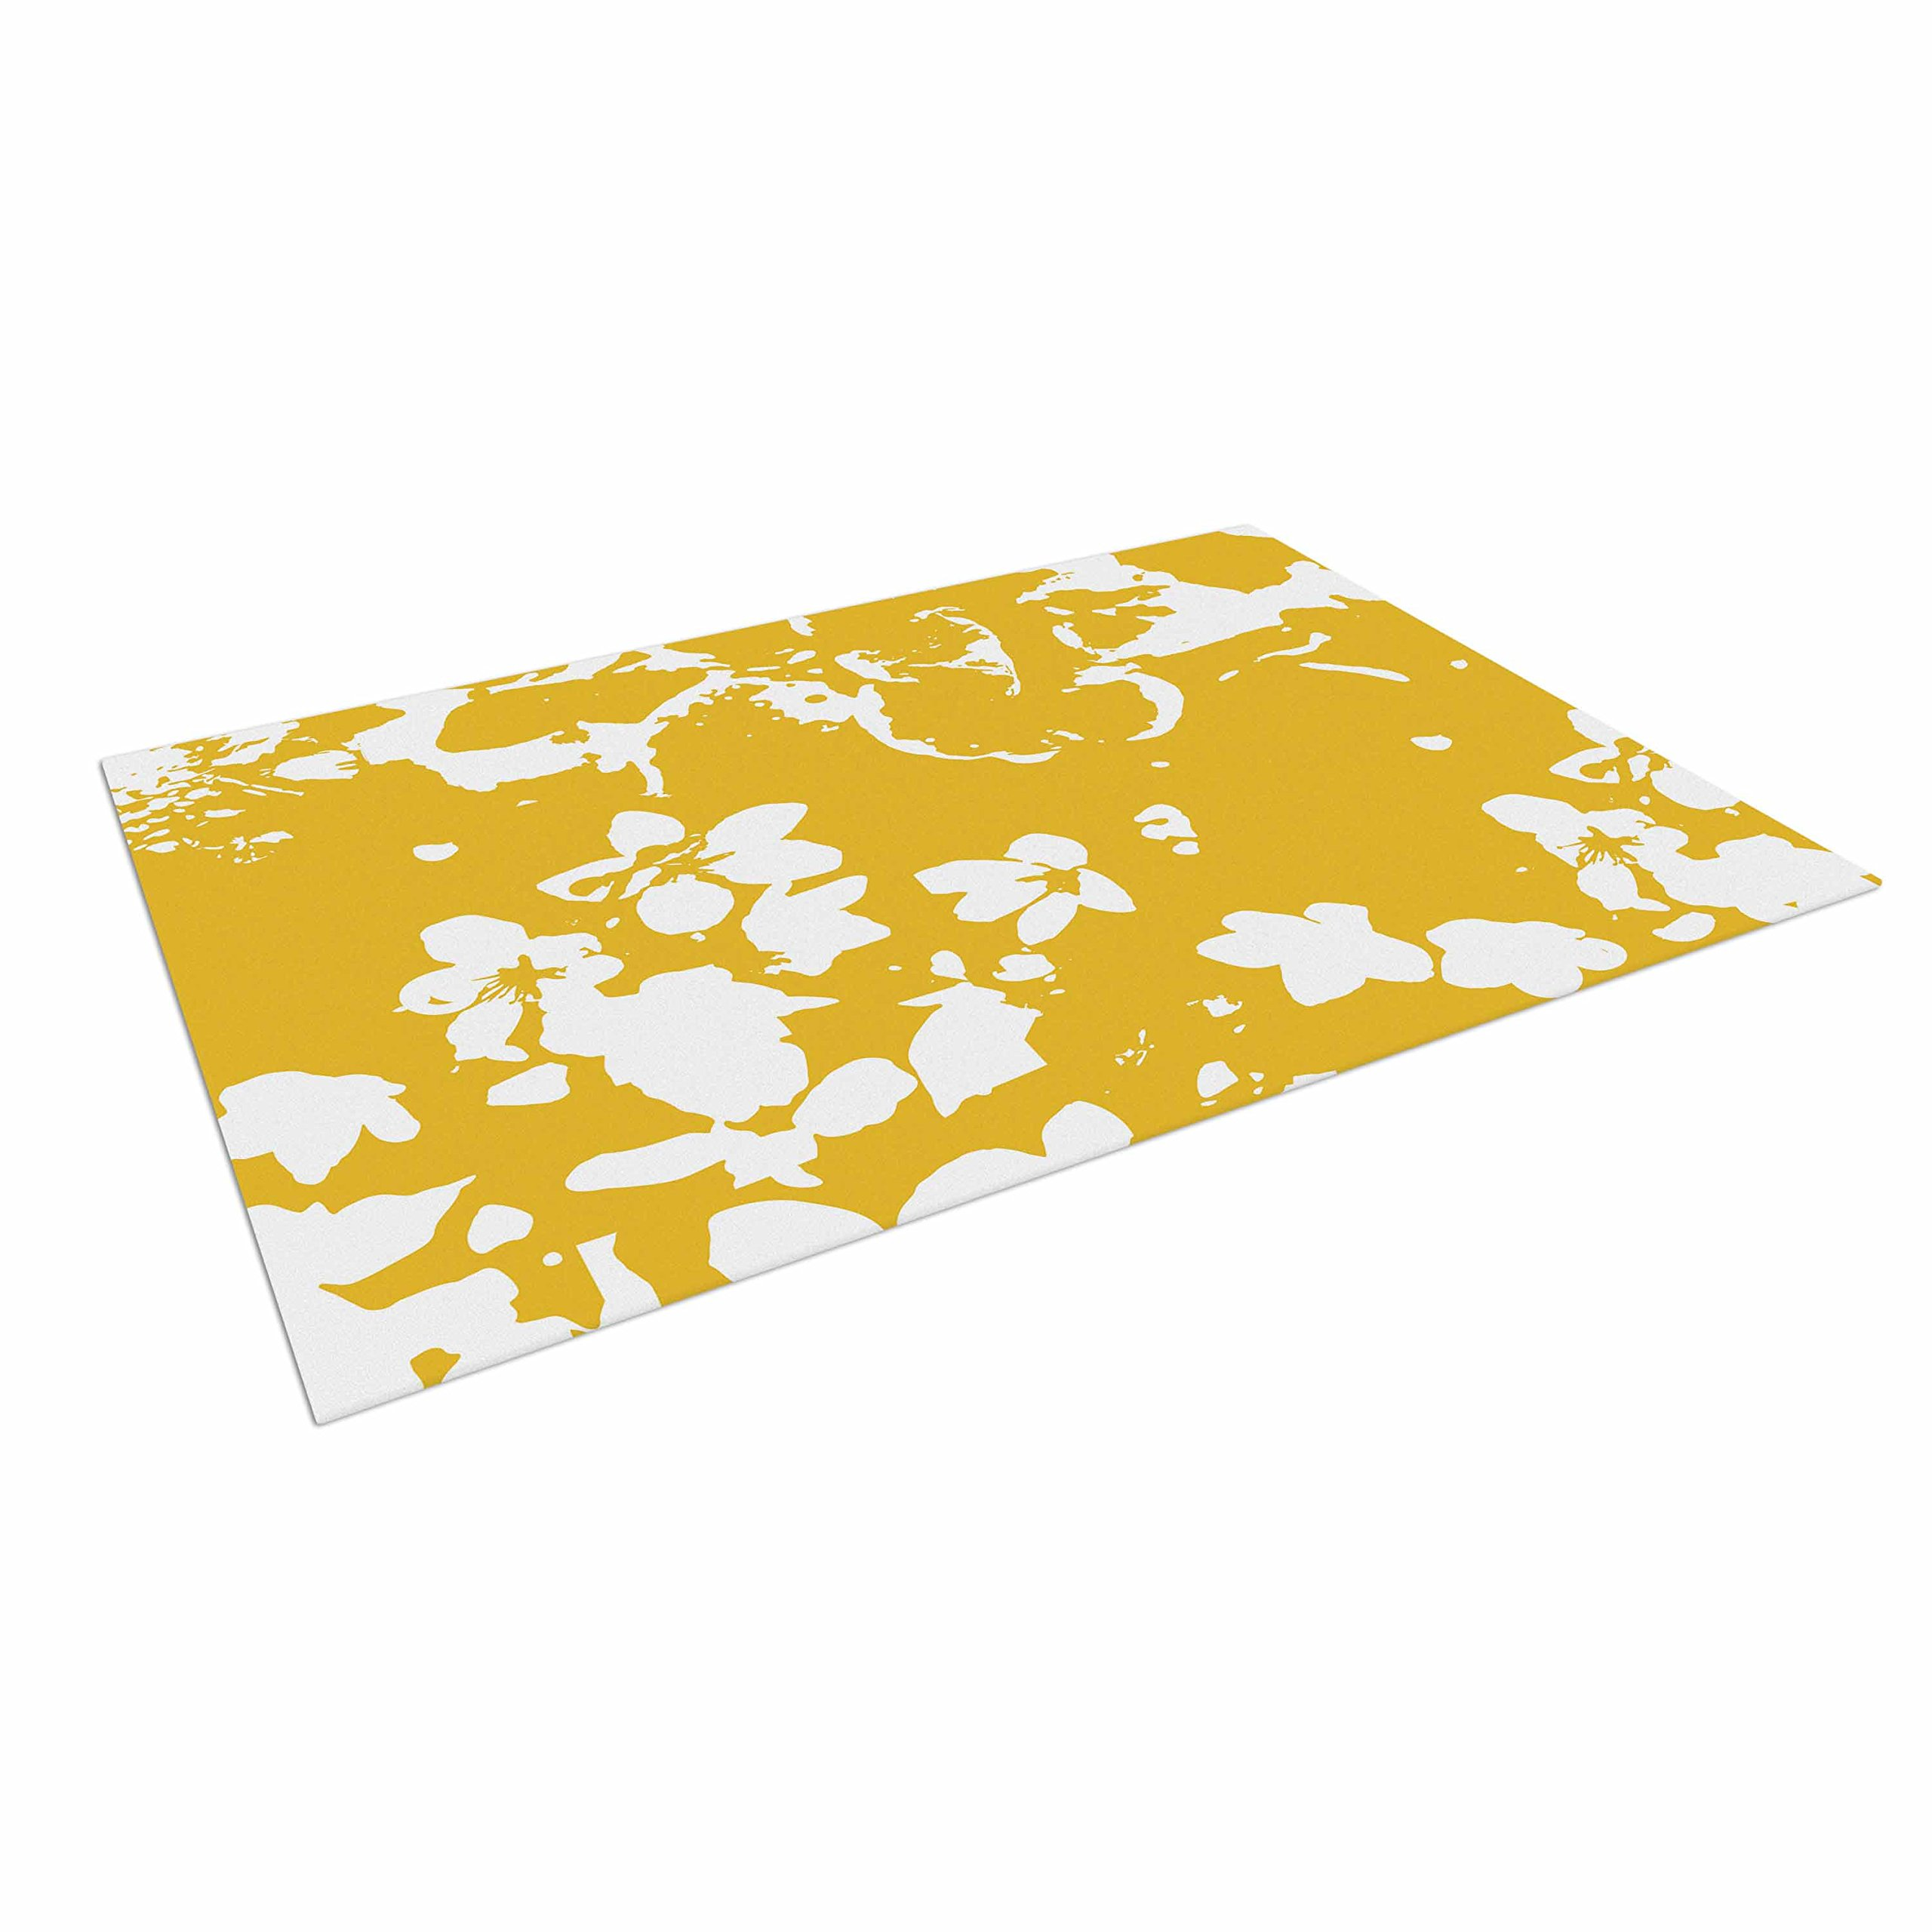 KESS InHouse Love Midge ''Helena Floral Yellow'' Golden White Outdoor Floor Mat, 4' x 5'